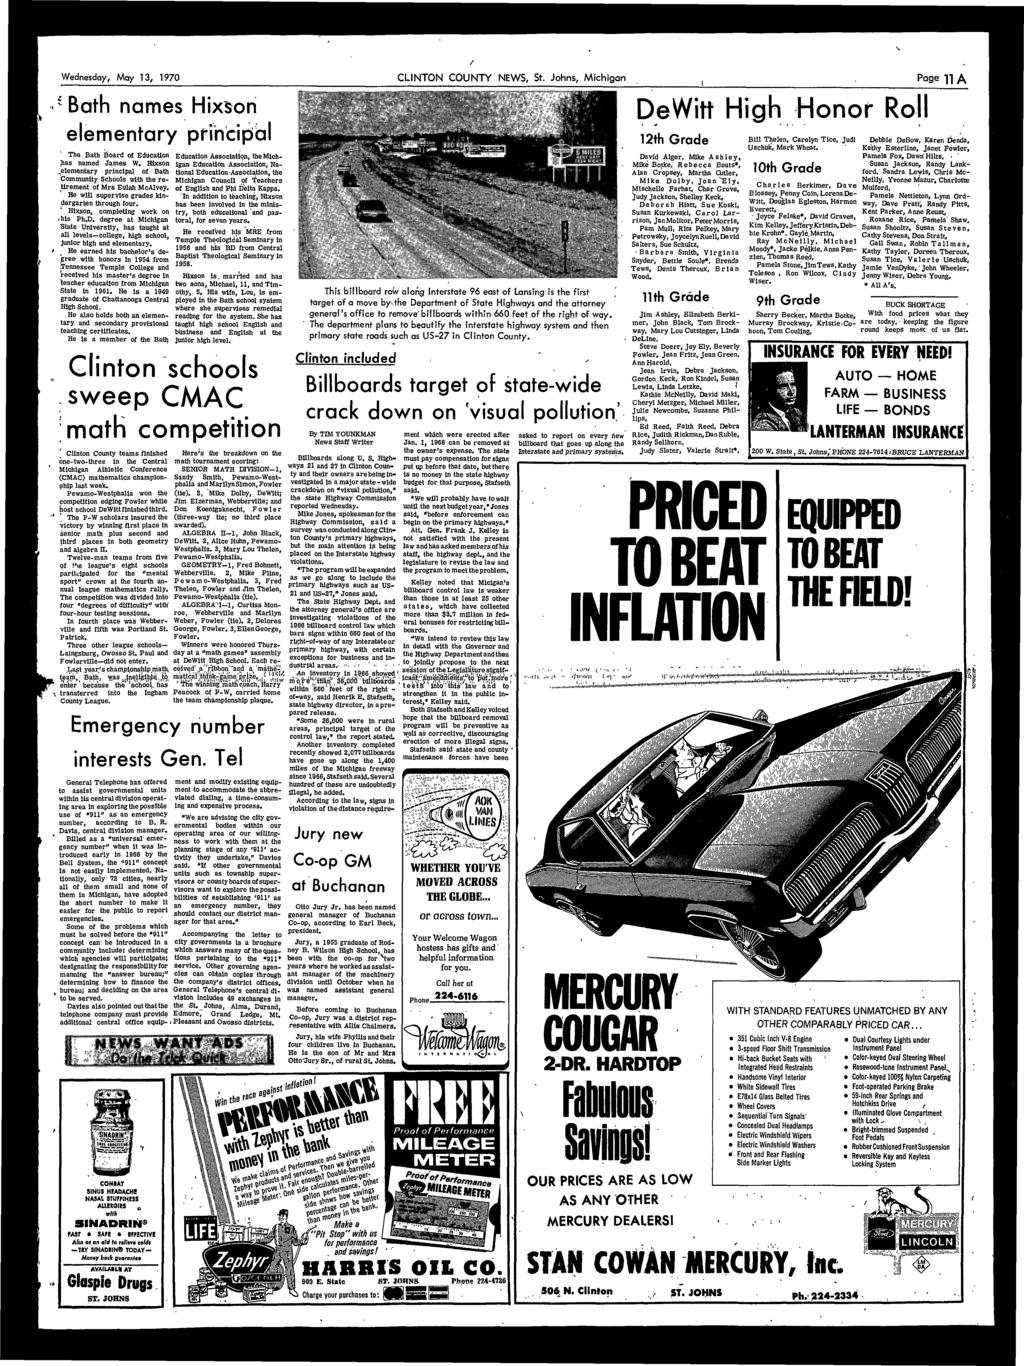 ** Wednesday, May, 1970 CLINTON COUNTY NEWS, St. Johns, Michigan Page n A Bath names Hixson elementary princi The Bath Board of Education has named James W. Hixson..elementary principal of Bath Community Schools with the retirement of Mrs Eulah McAlvey.